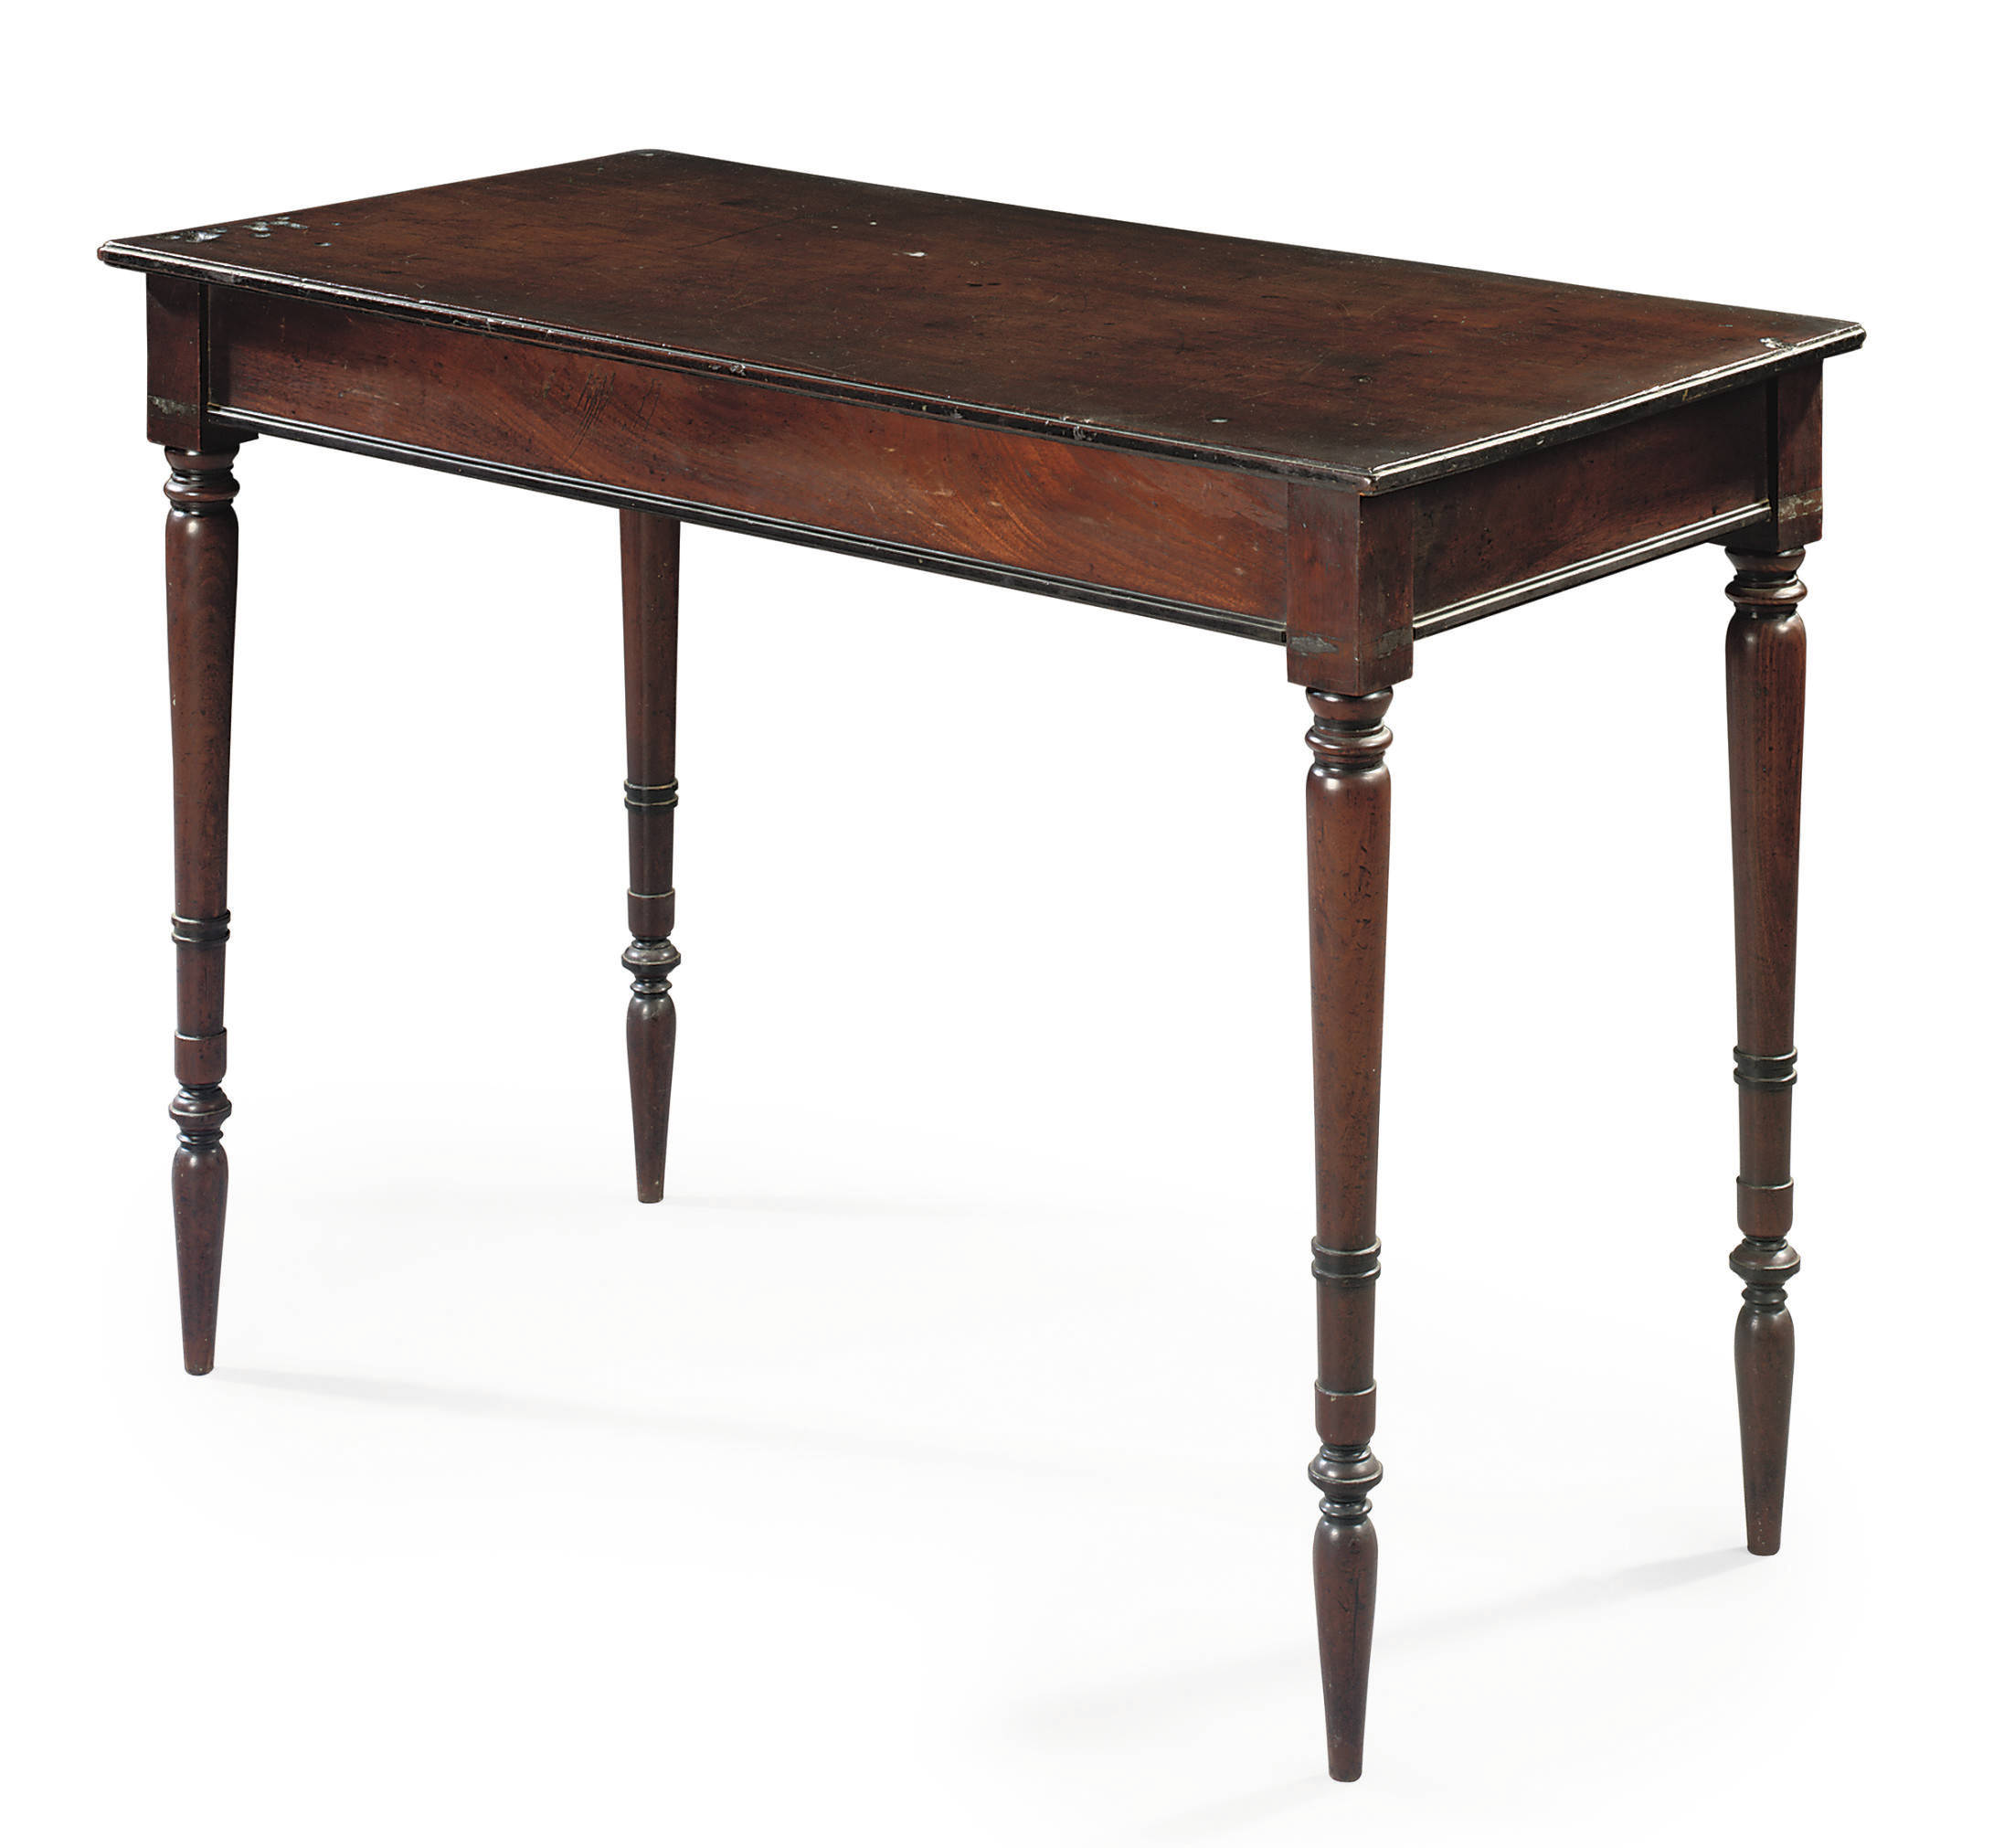 A REGENCY EBONY AND MAHOGANY SIDE TABLE